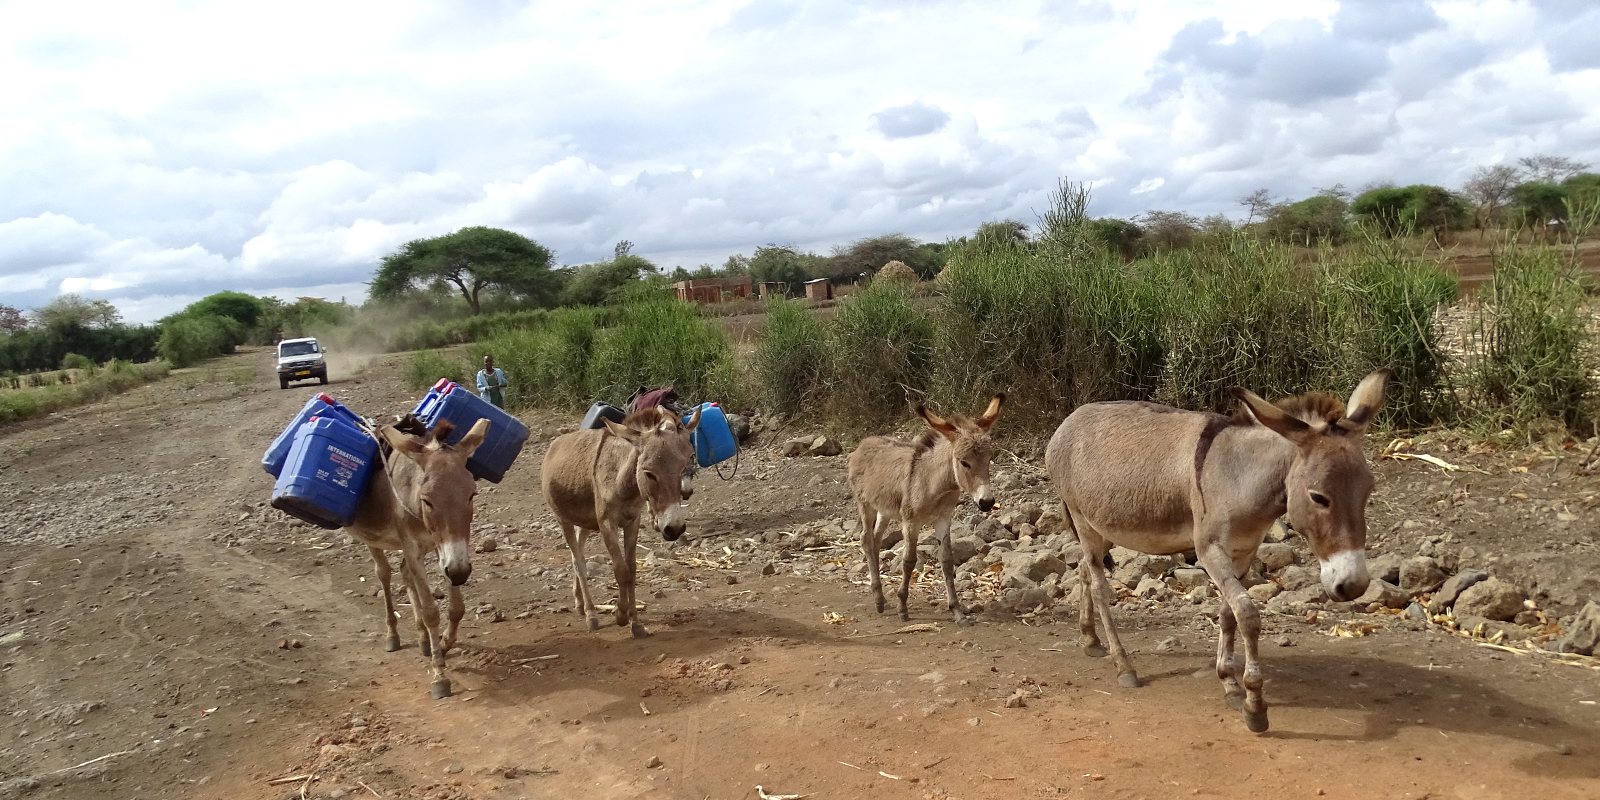 Many donkeys in Tanzania are killed for their skin